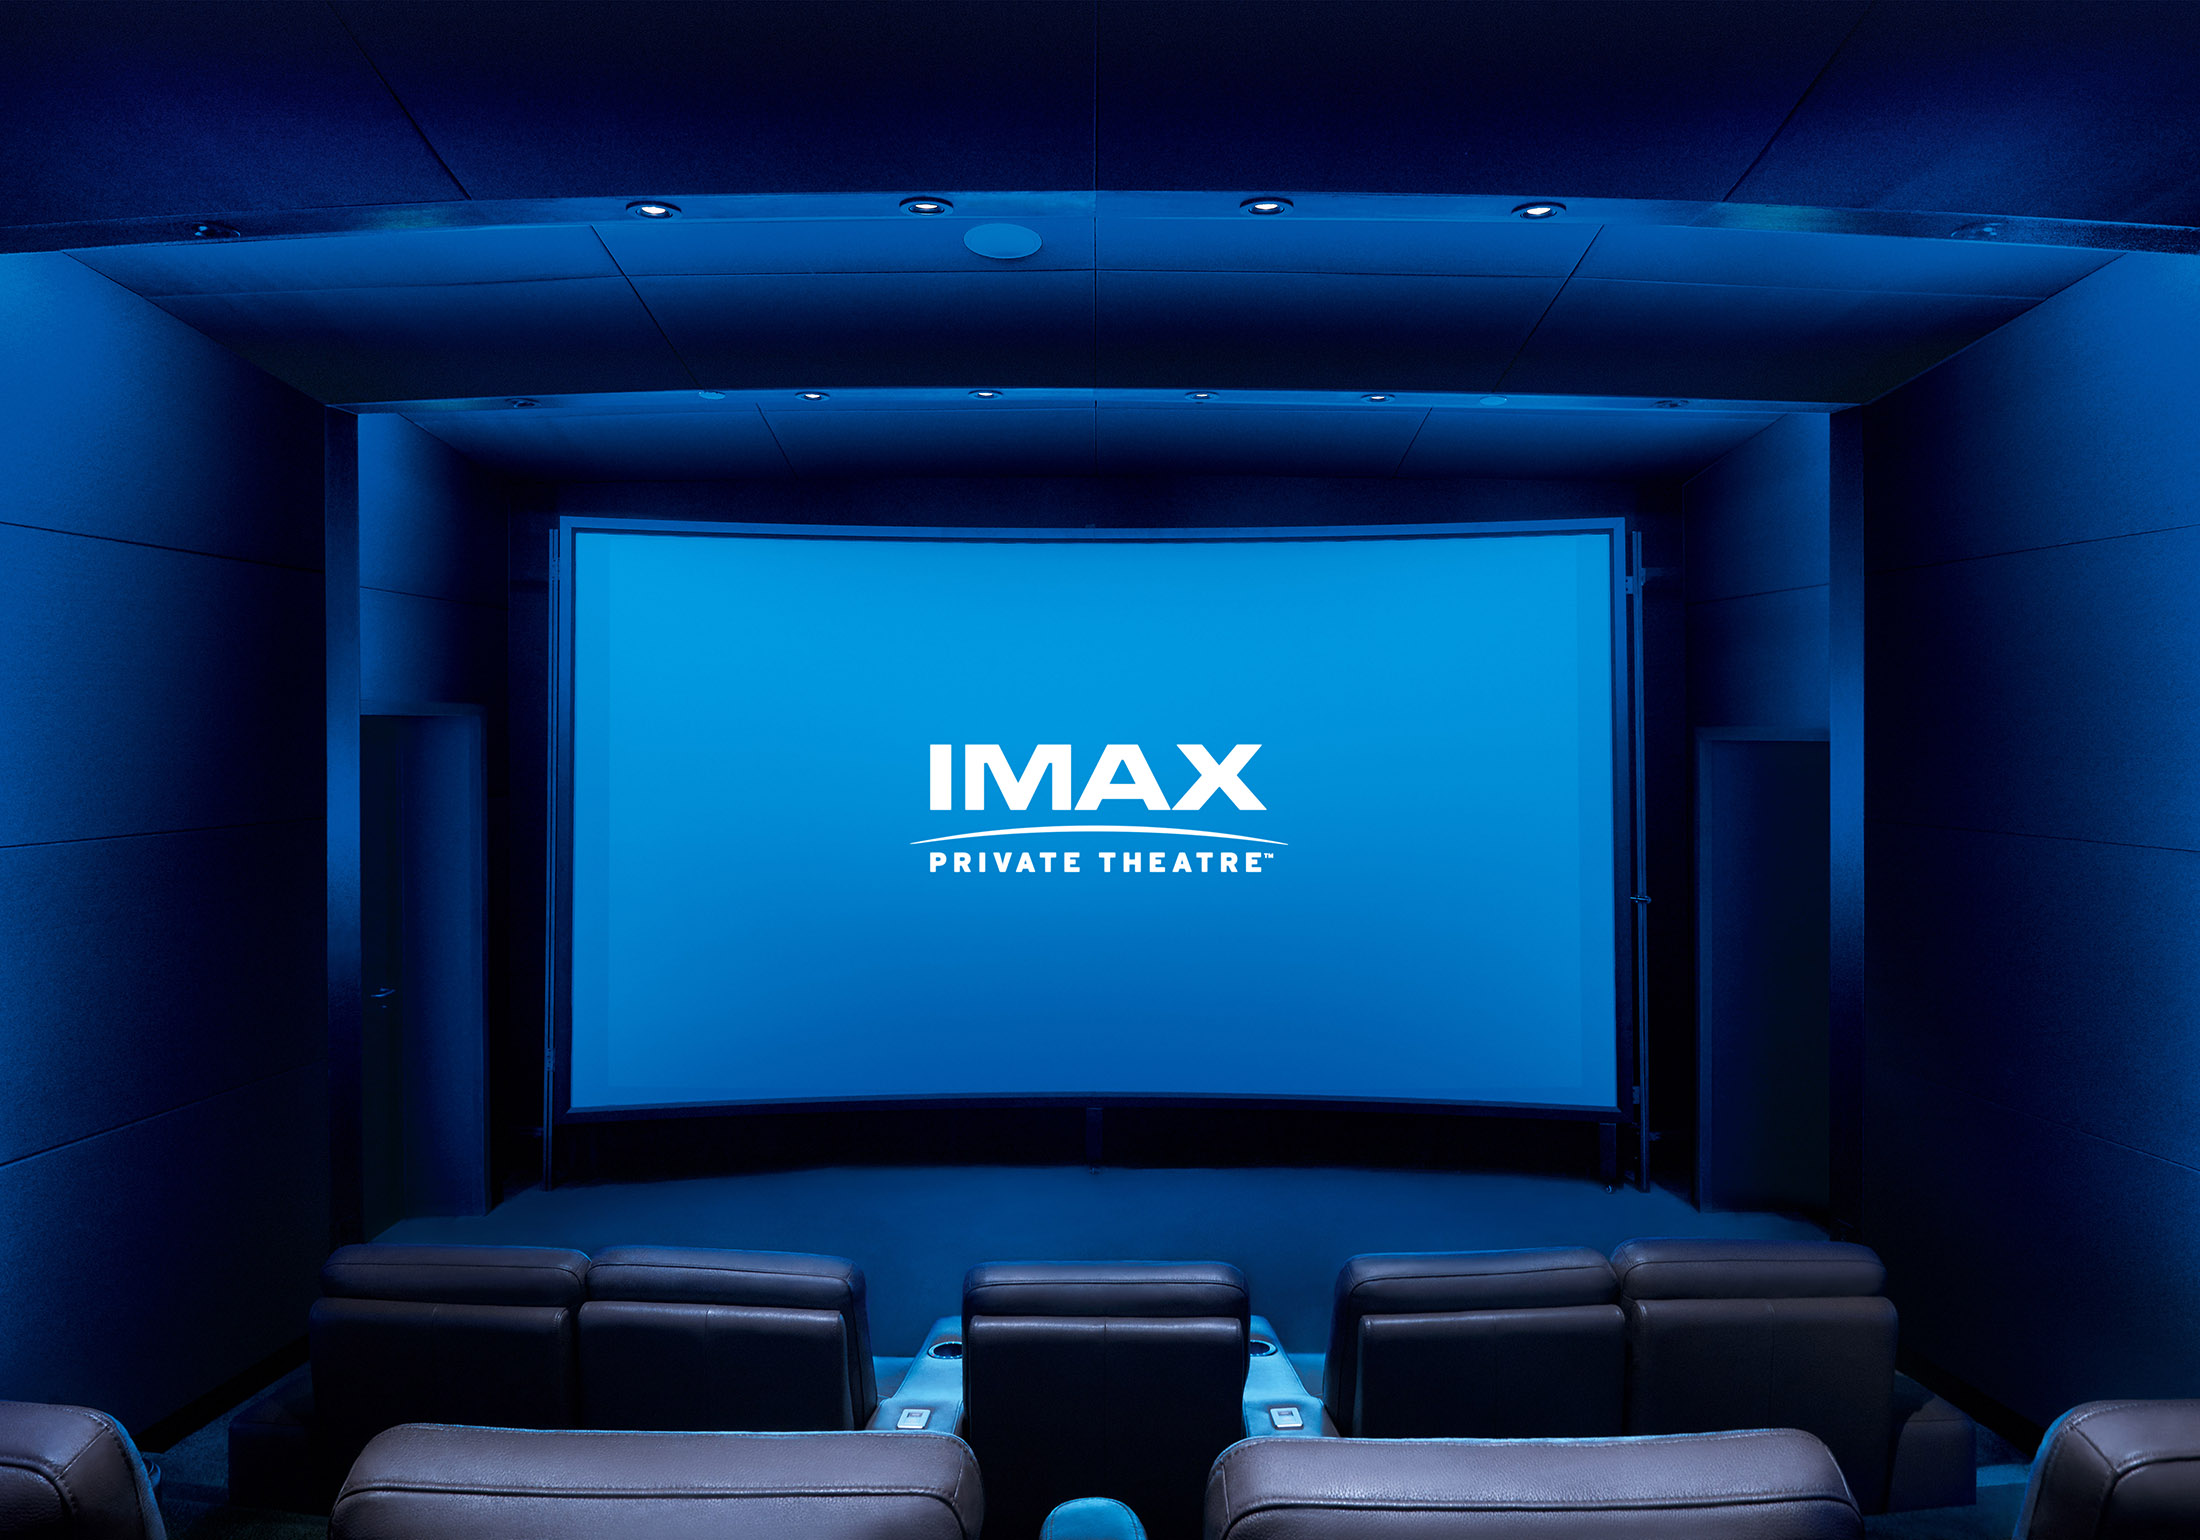 imax theater wiring imax will build you a home theater mdash starting at 400 000 rca dvd home theater wiring #12